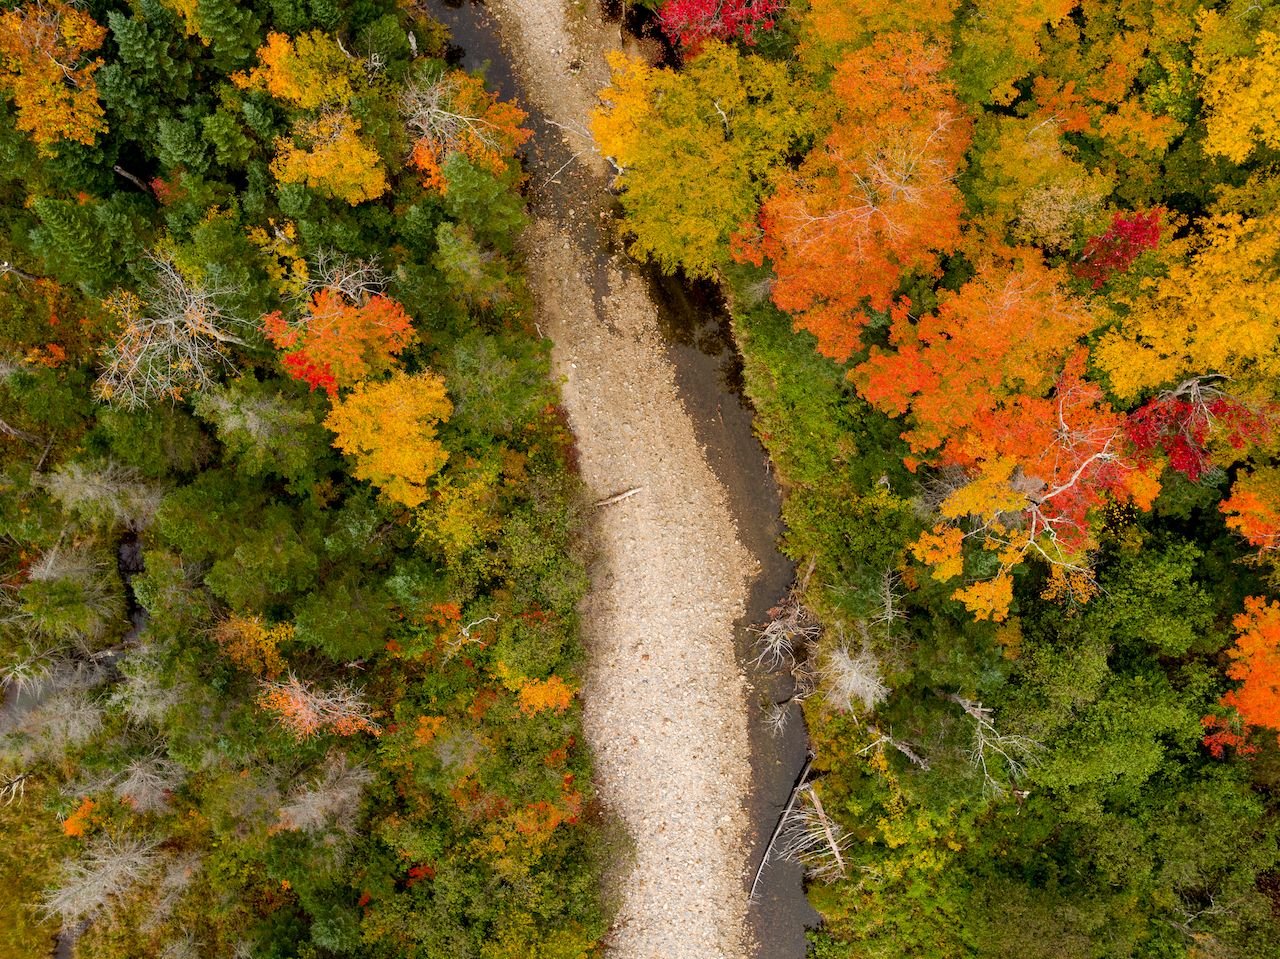 An aerial view of fall foliage in New Hampshire